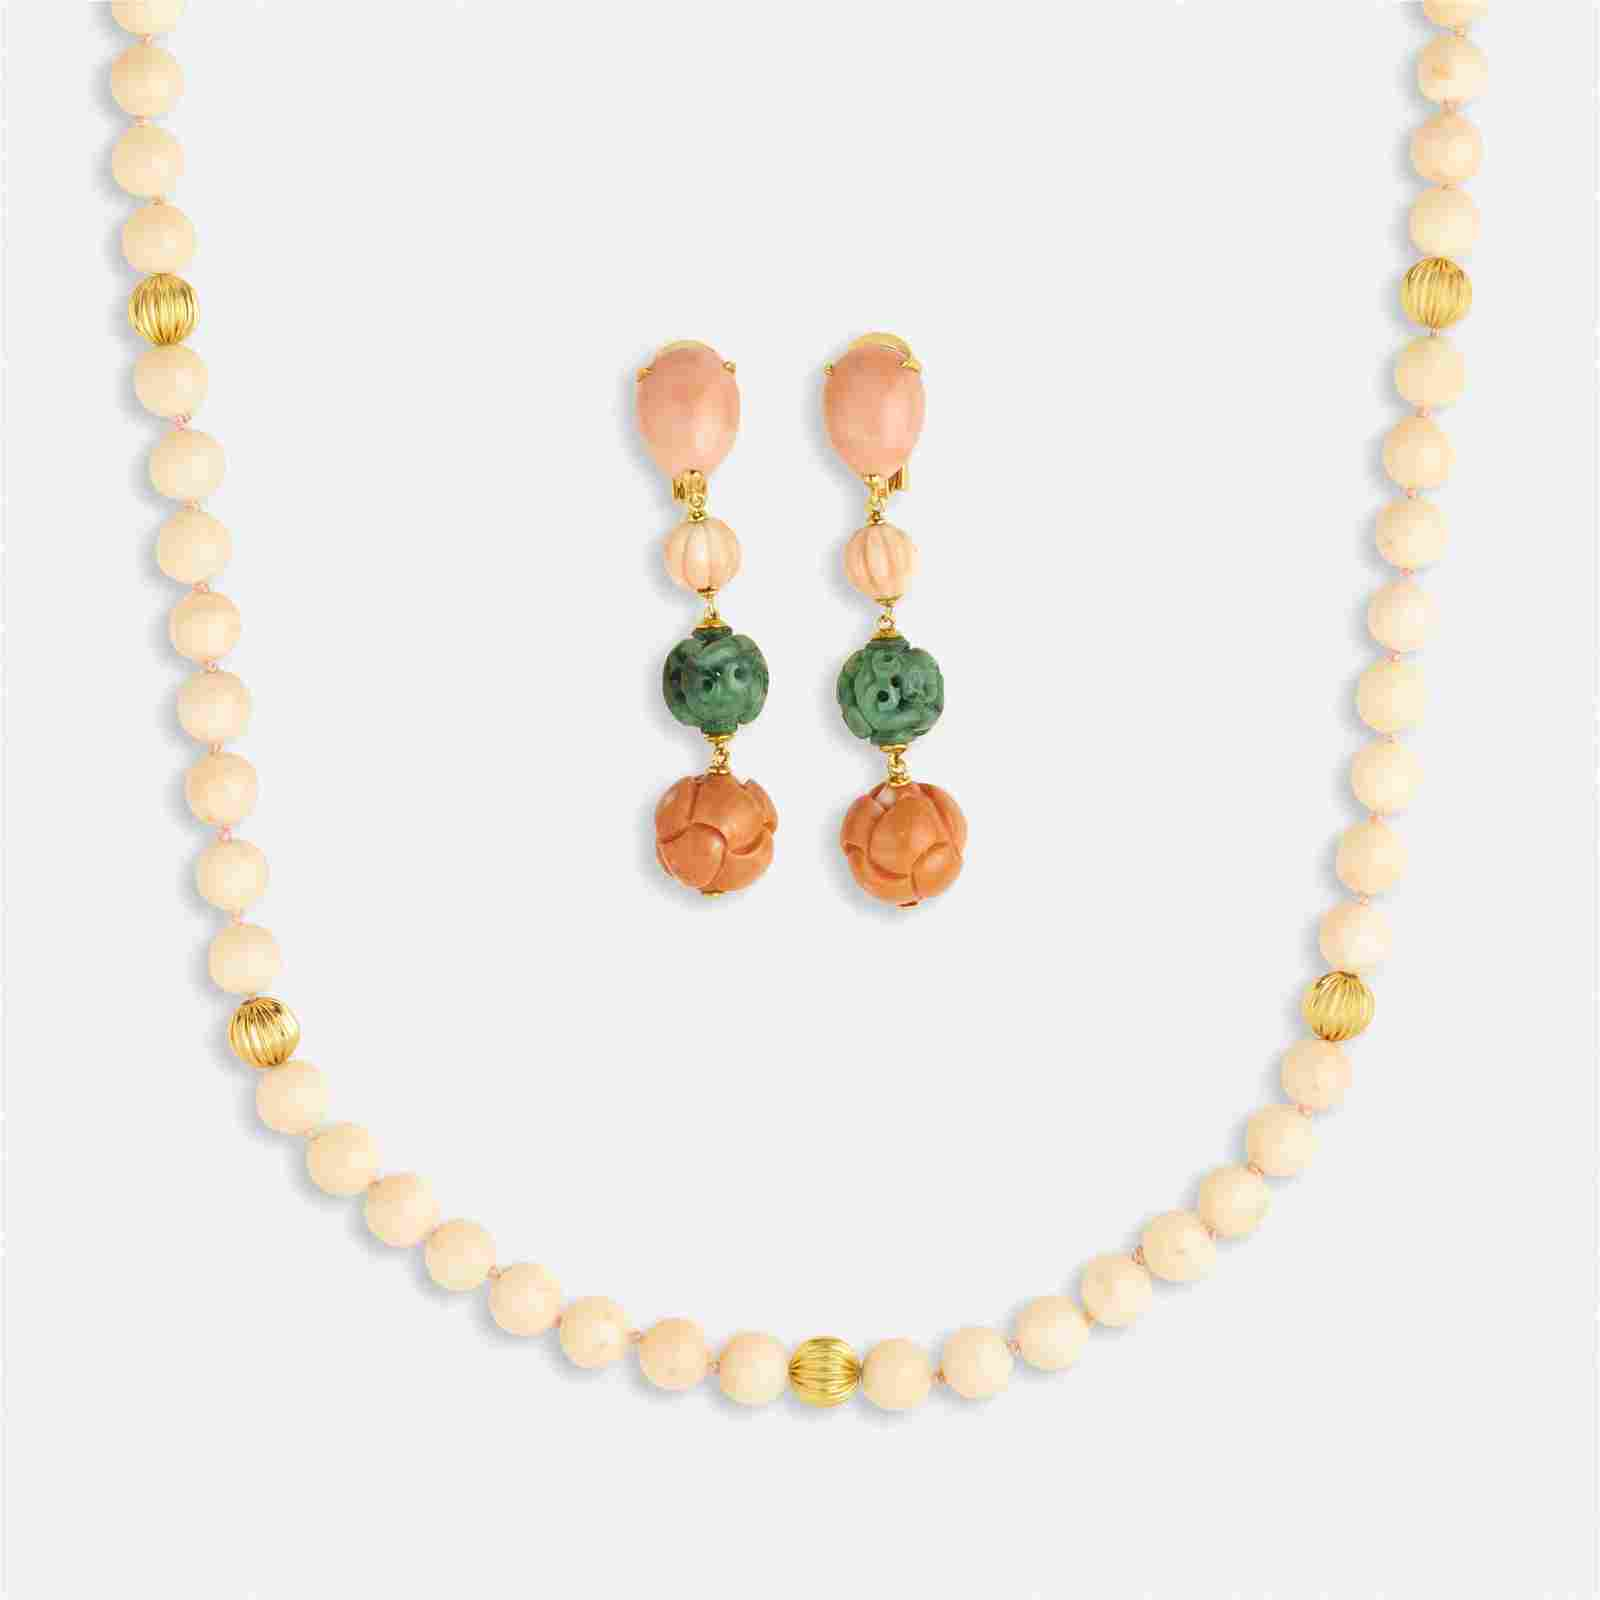 Group of coral, jade, and gold jewelry